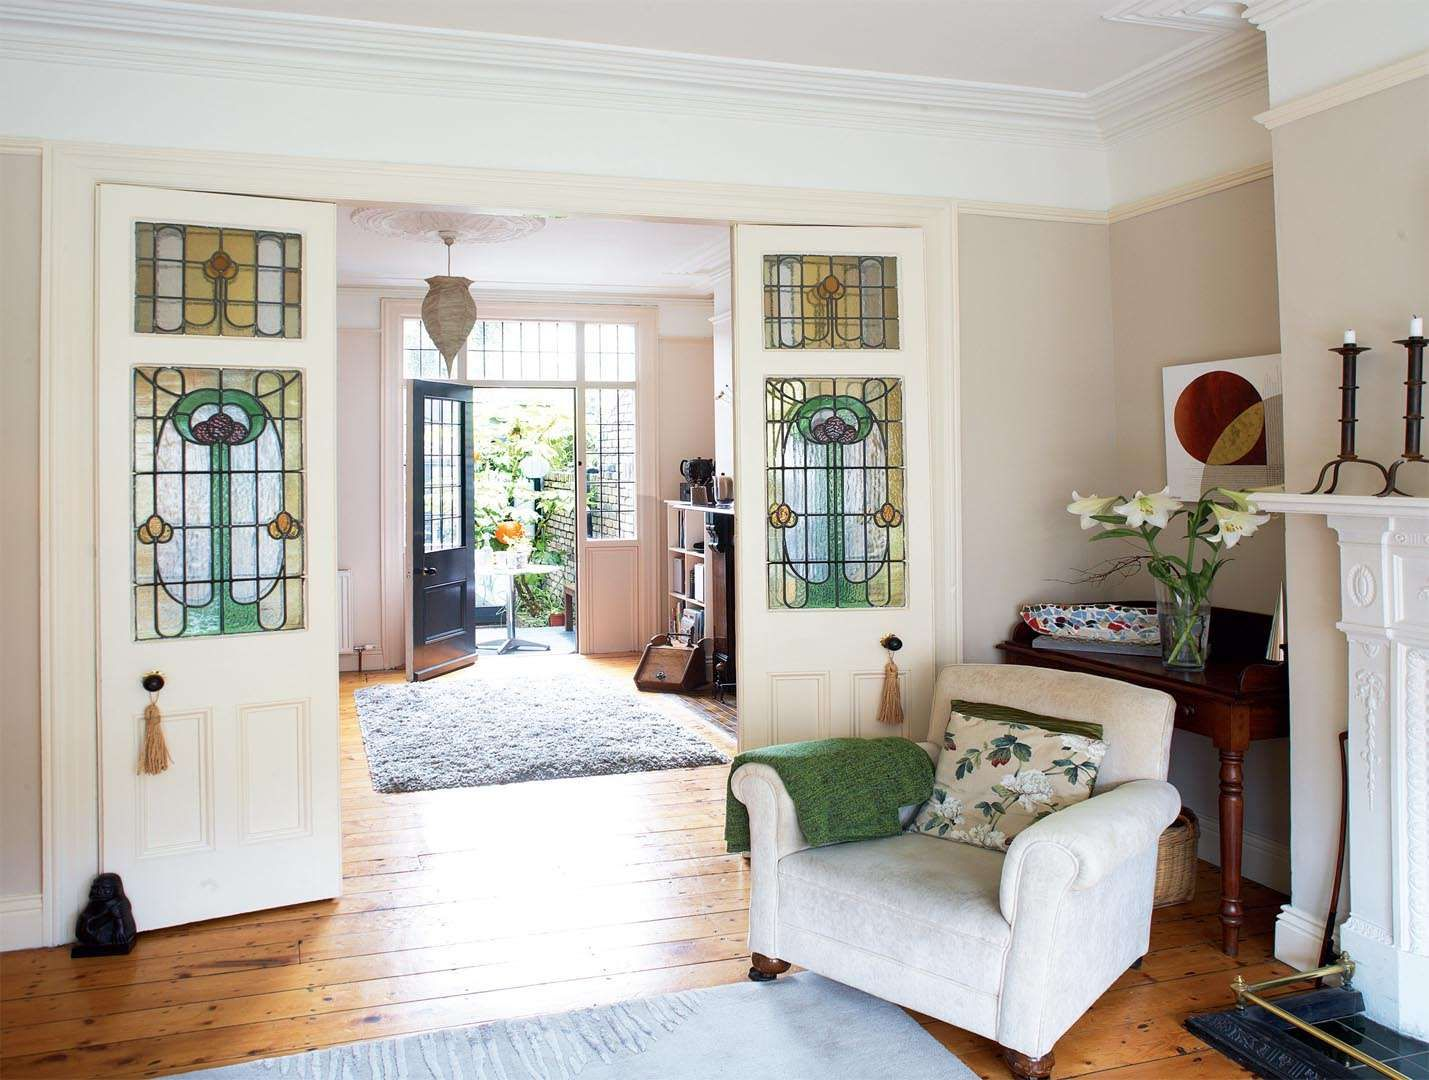 Renovating a victorian townhouse real homes dream for Bedroom ideas victorian terrace